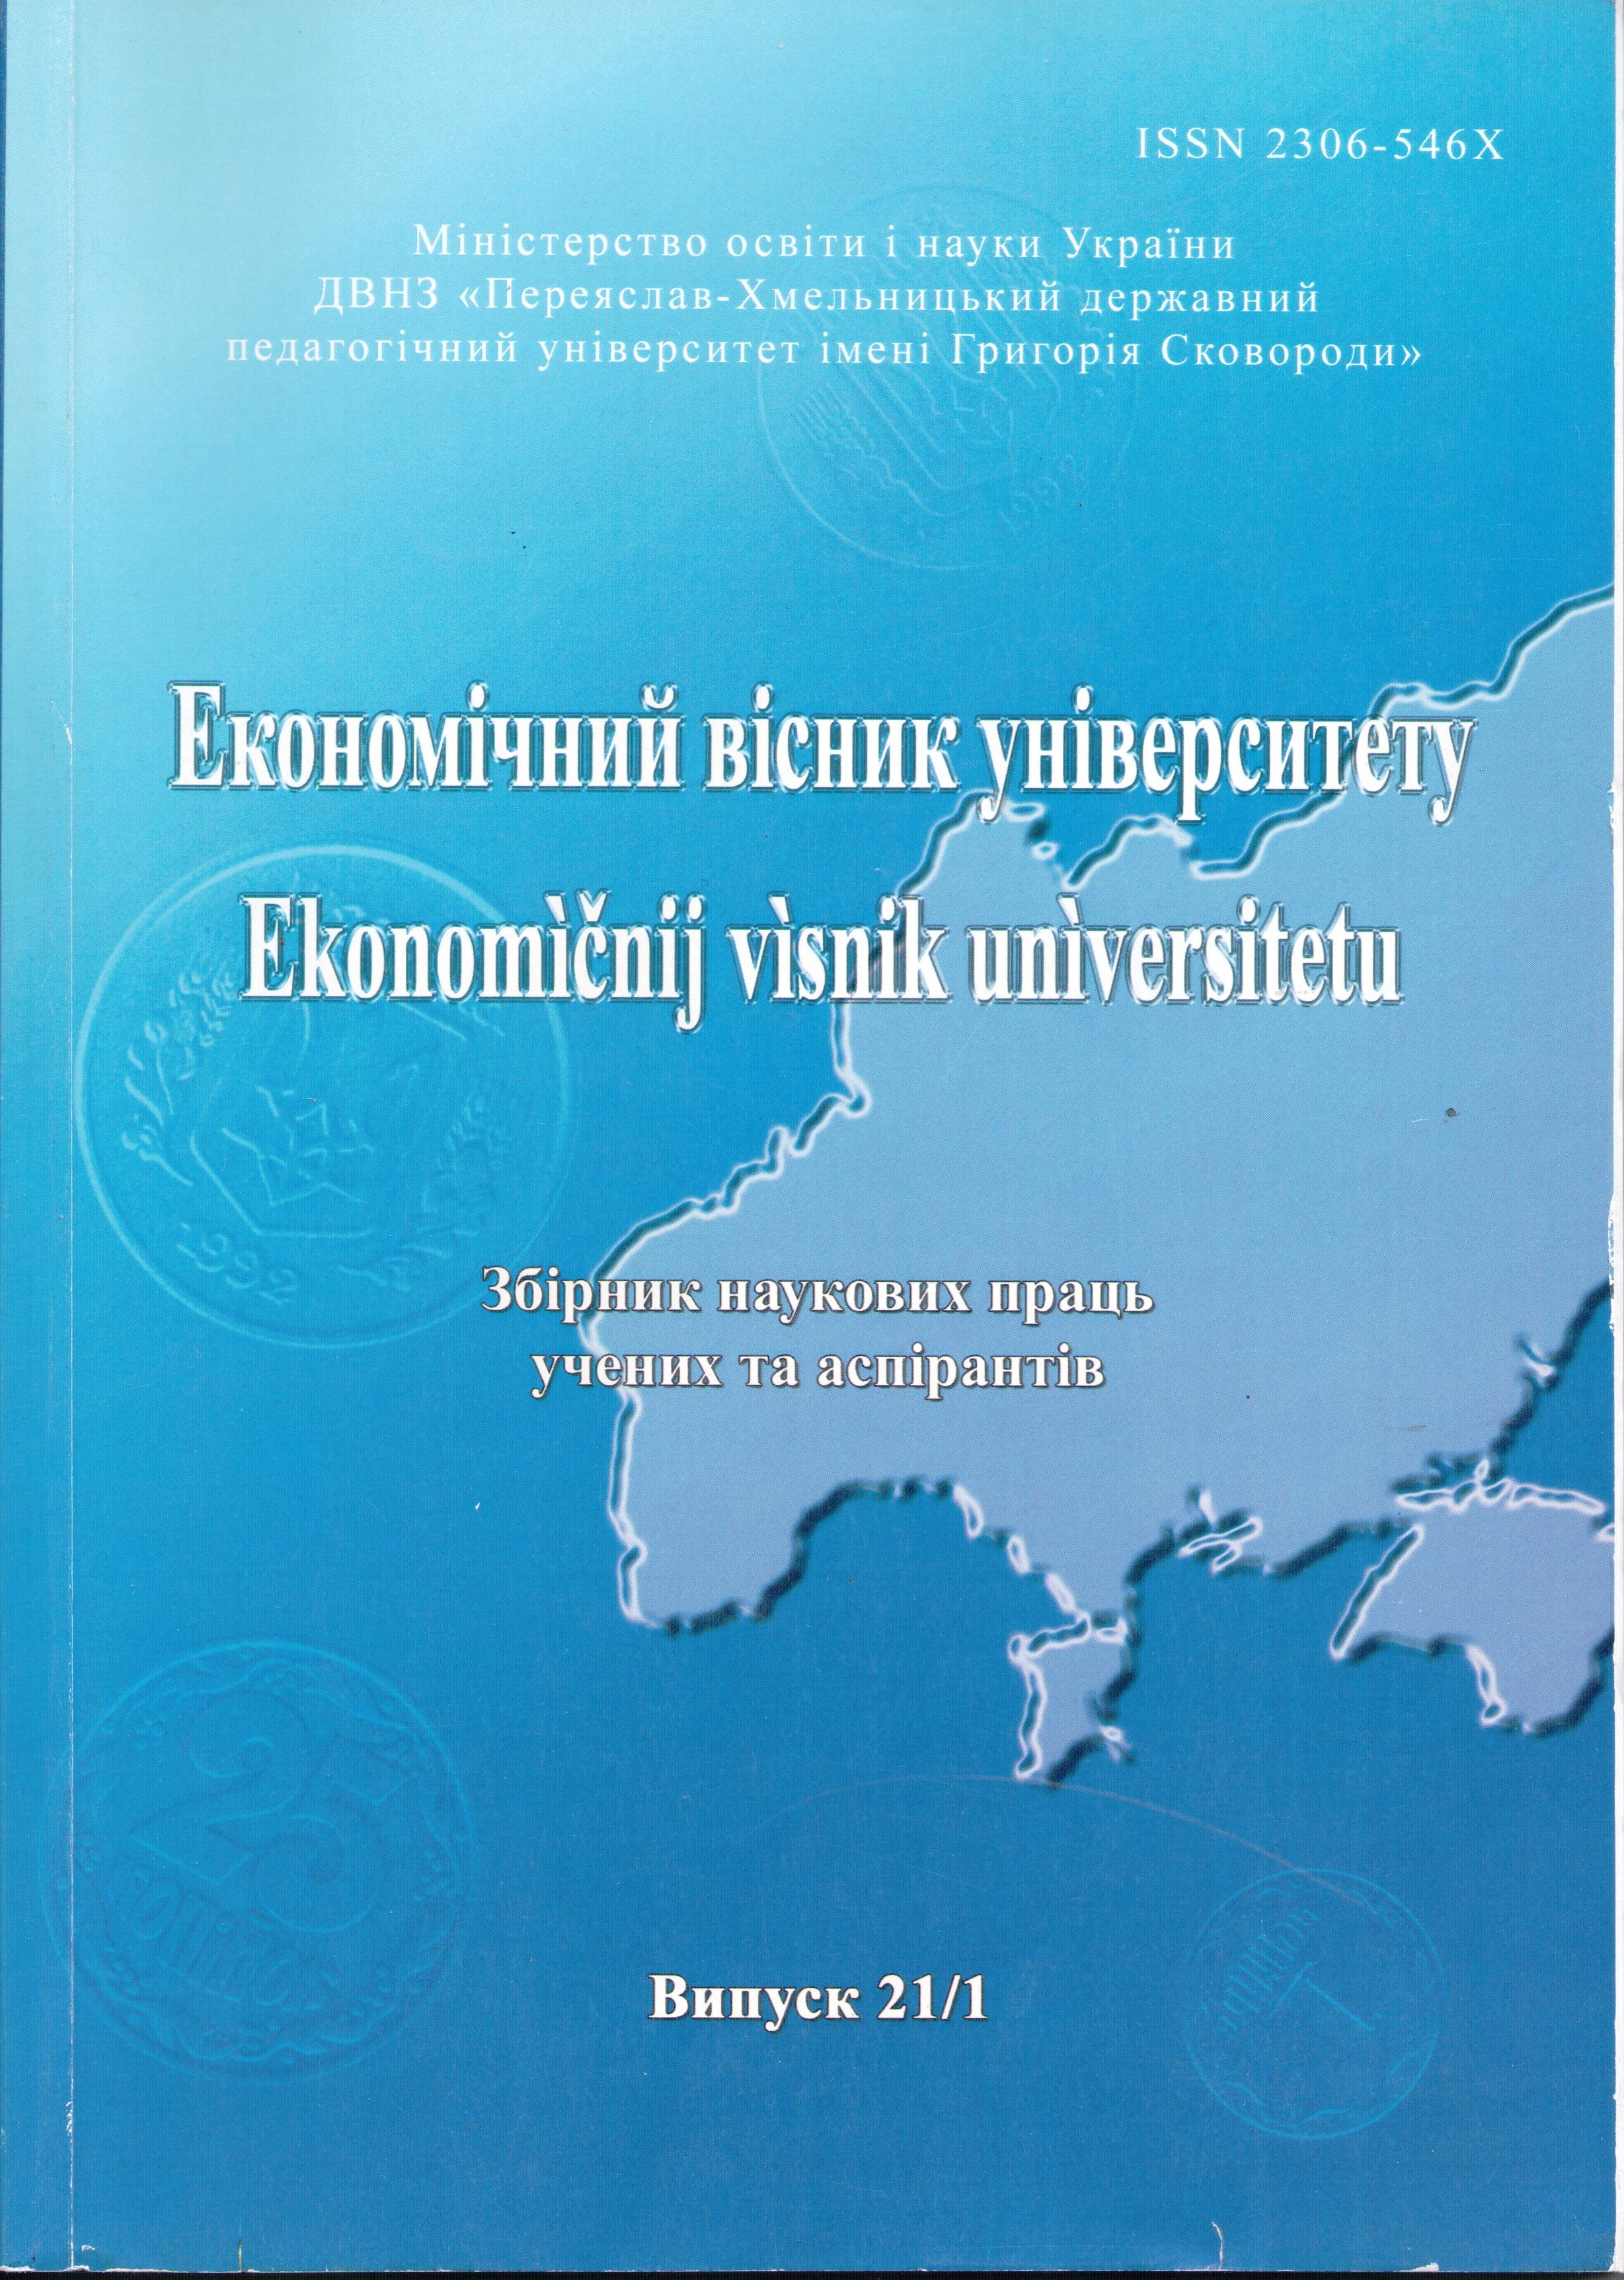 Management of company value in the conditions of economic instability Cover Image